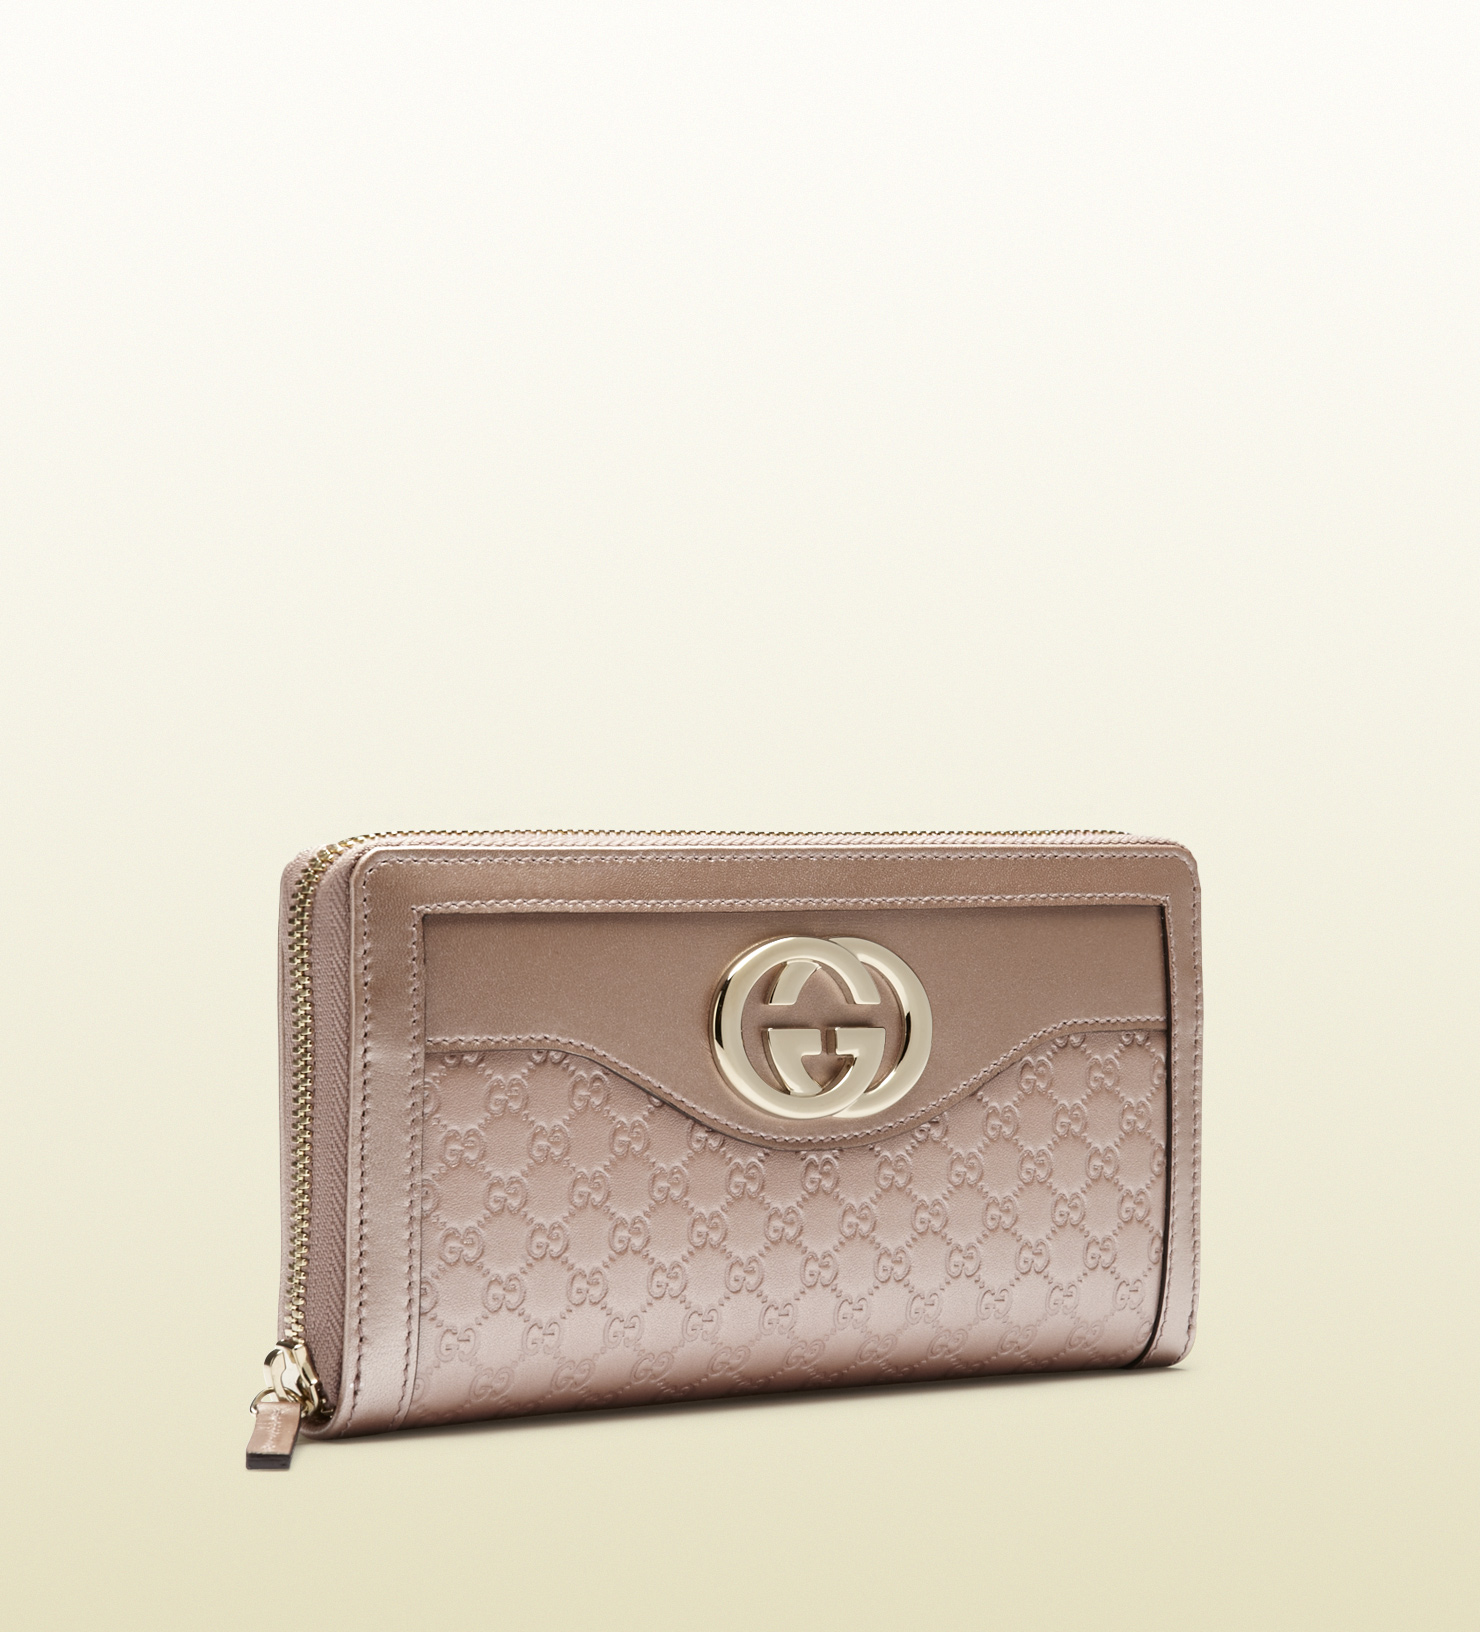 3a6d867ed1d Lyst - Gucci Sukey Light Pink Microguccissima Leather Zip Around ...